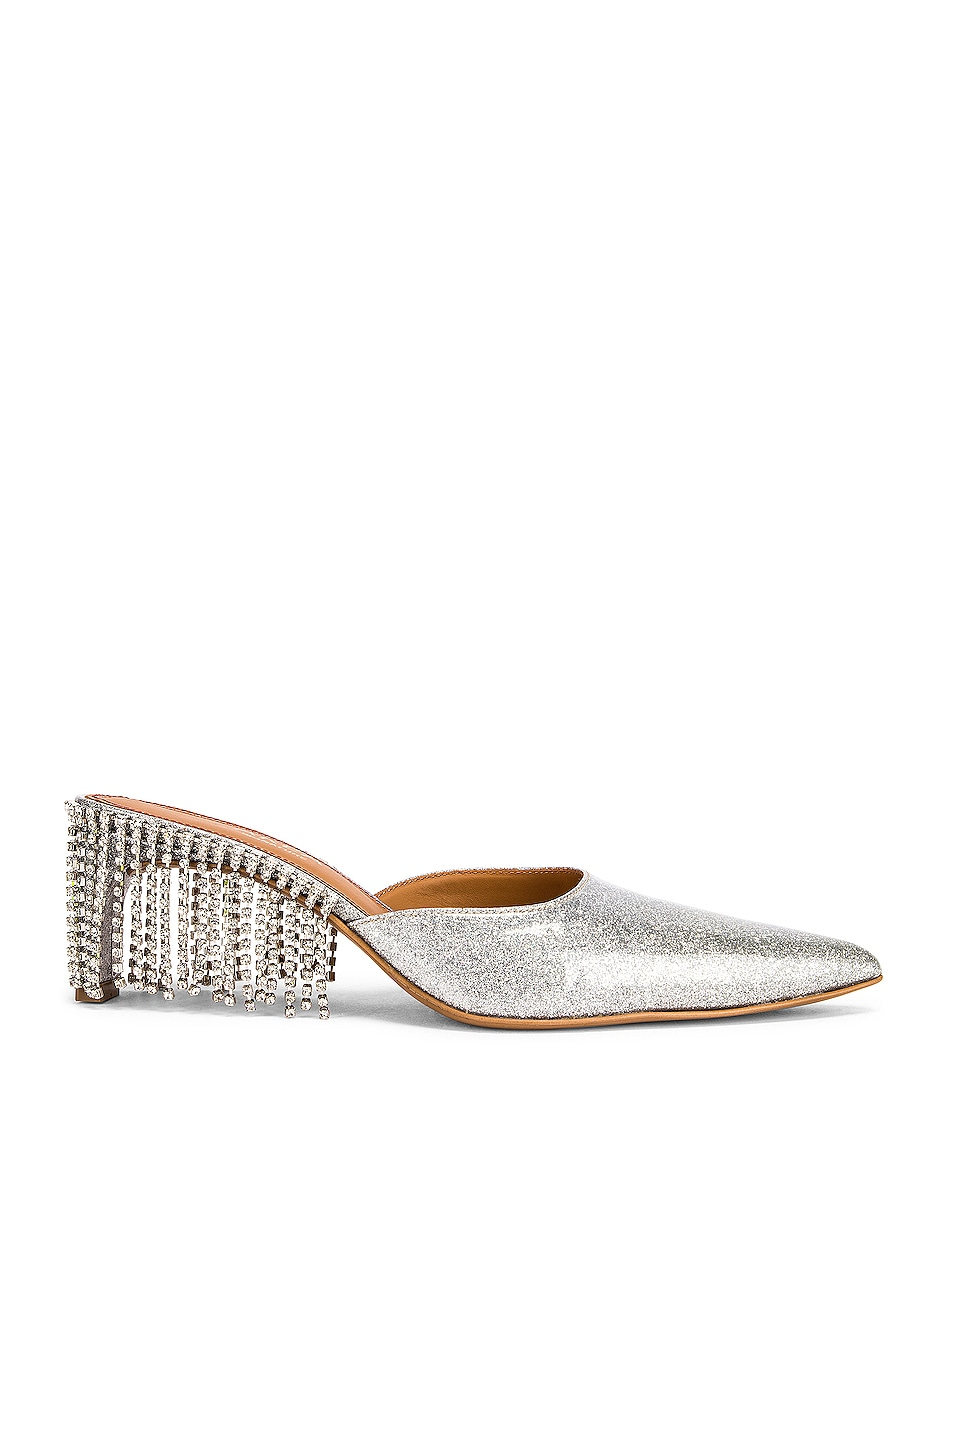 Image 1 of AREA Crystal Fringe Kitten Heel in Silver